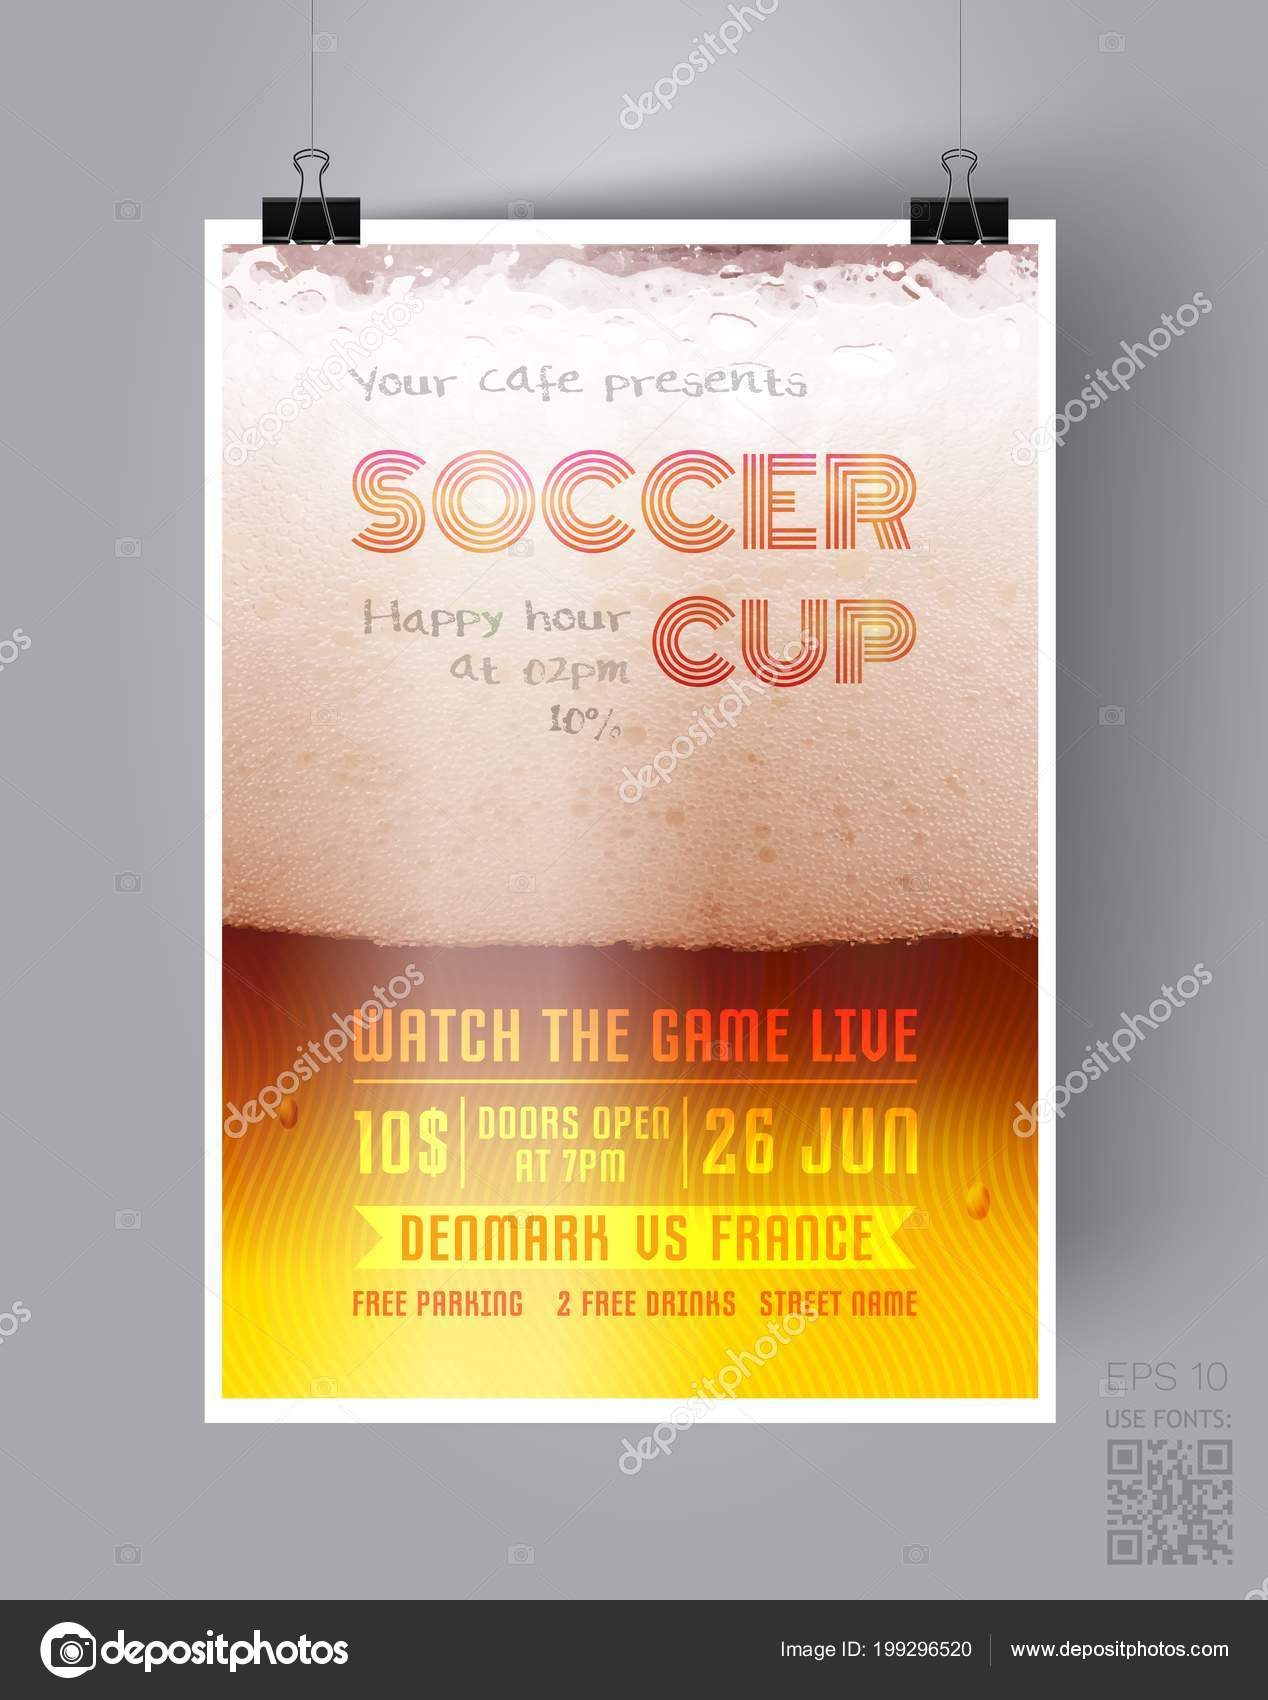 soccer cup flyer template on the background of a beer glass happy